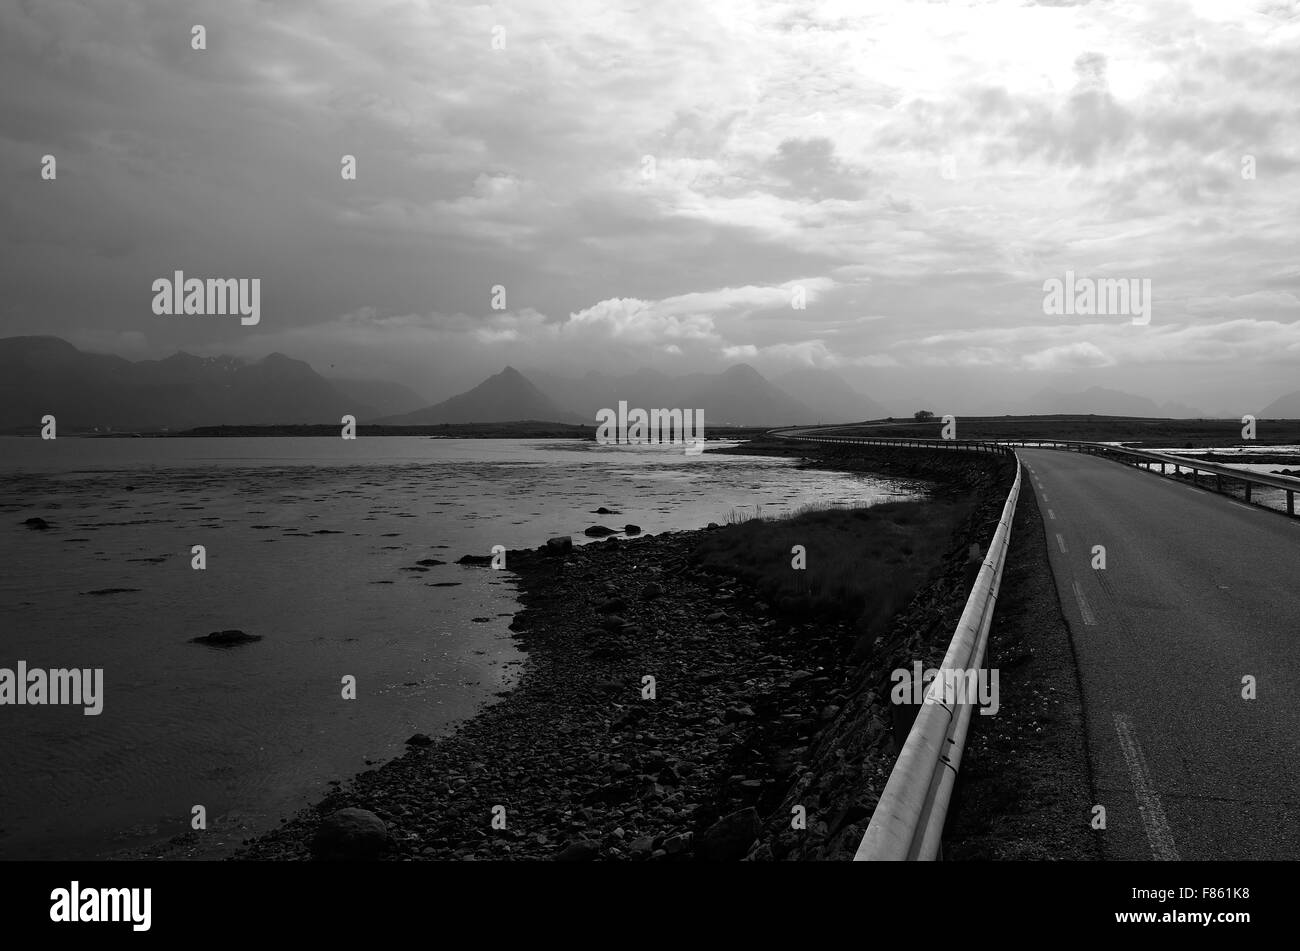 long road through flat landscape with mountain in background and ocean on sides - Stock Image